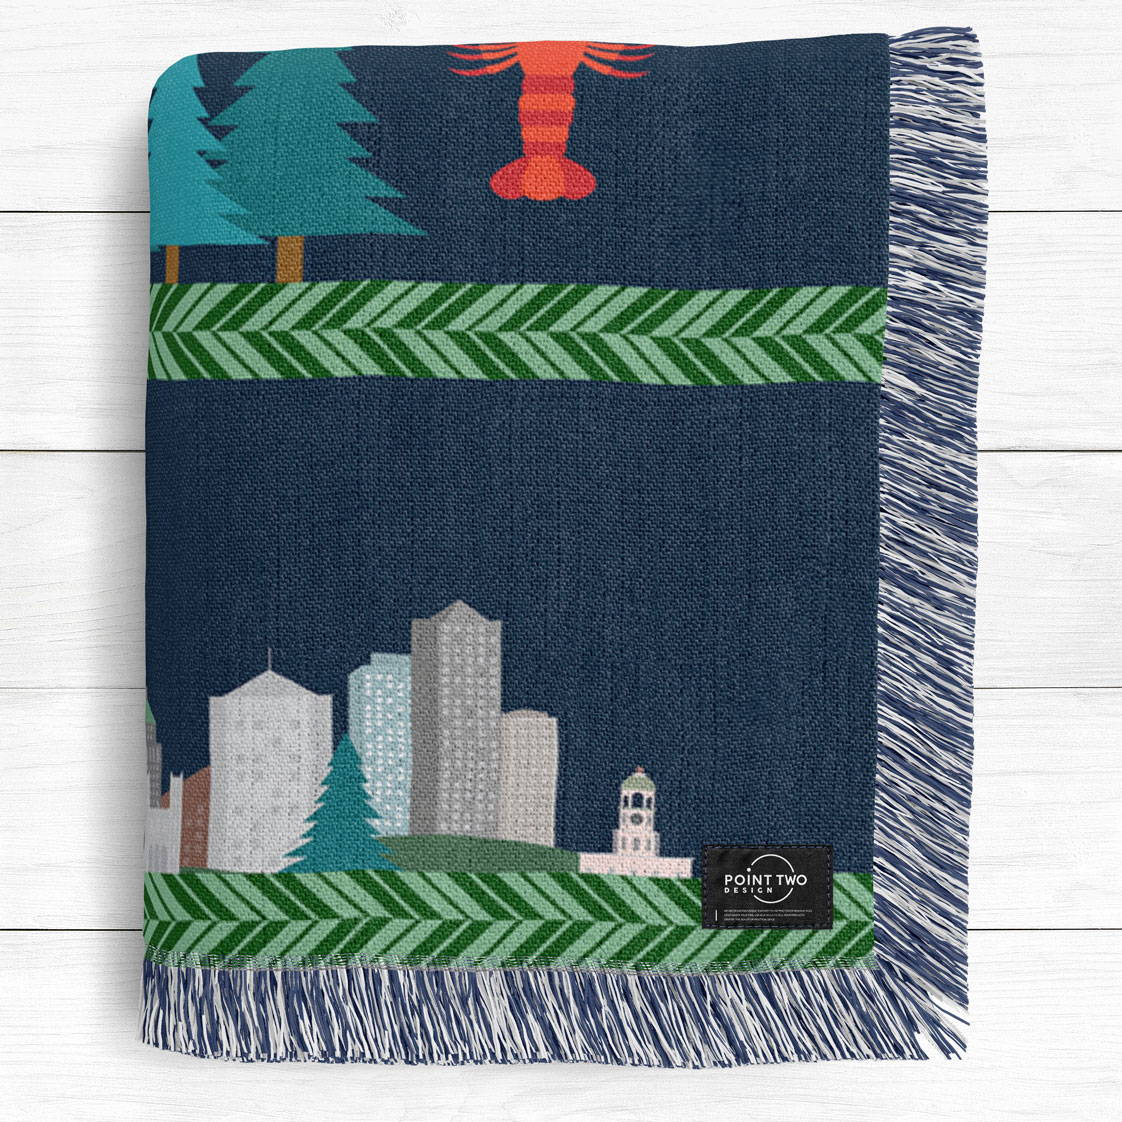 modern illustrated artwork of Canada from north to south as a cotton woven blanket